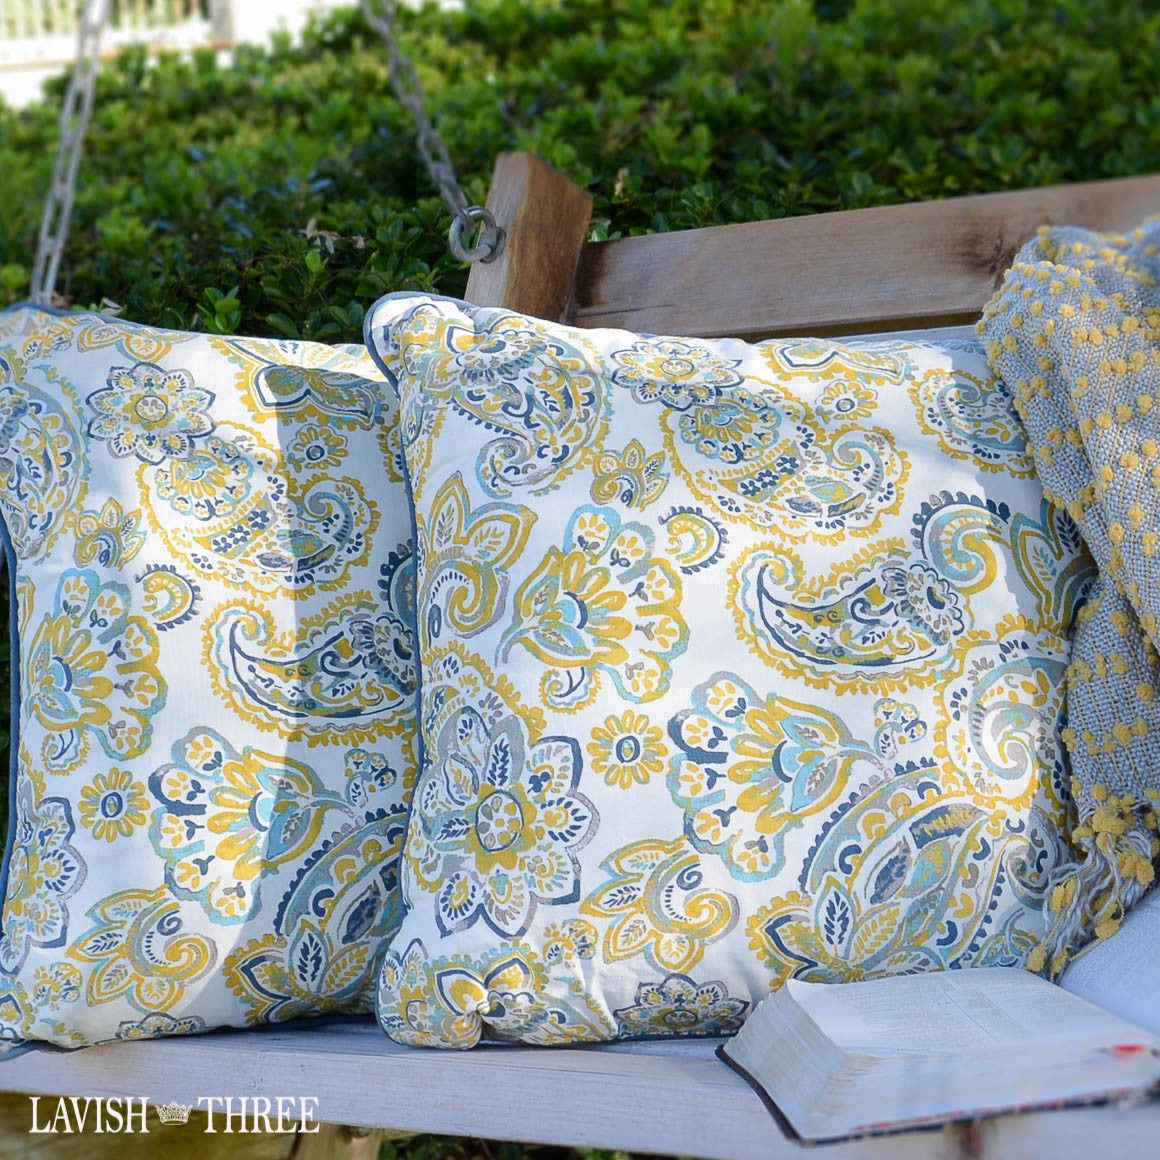 Paisley throw accent decorative pillow set yellow white blue gray